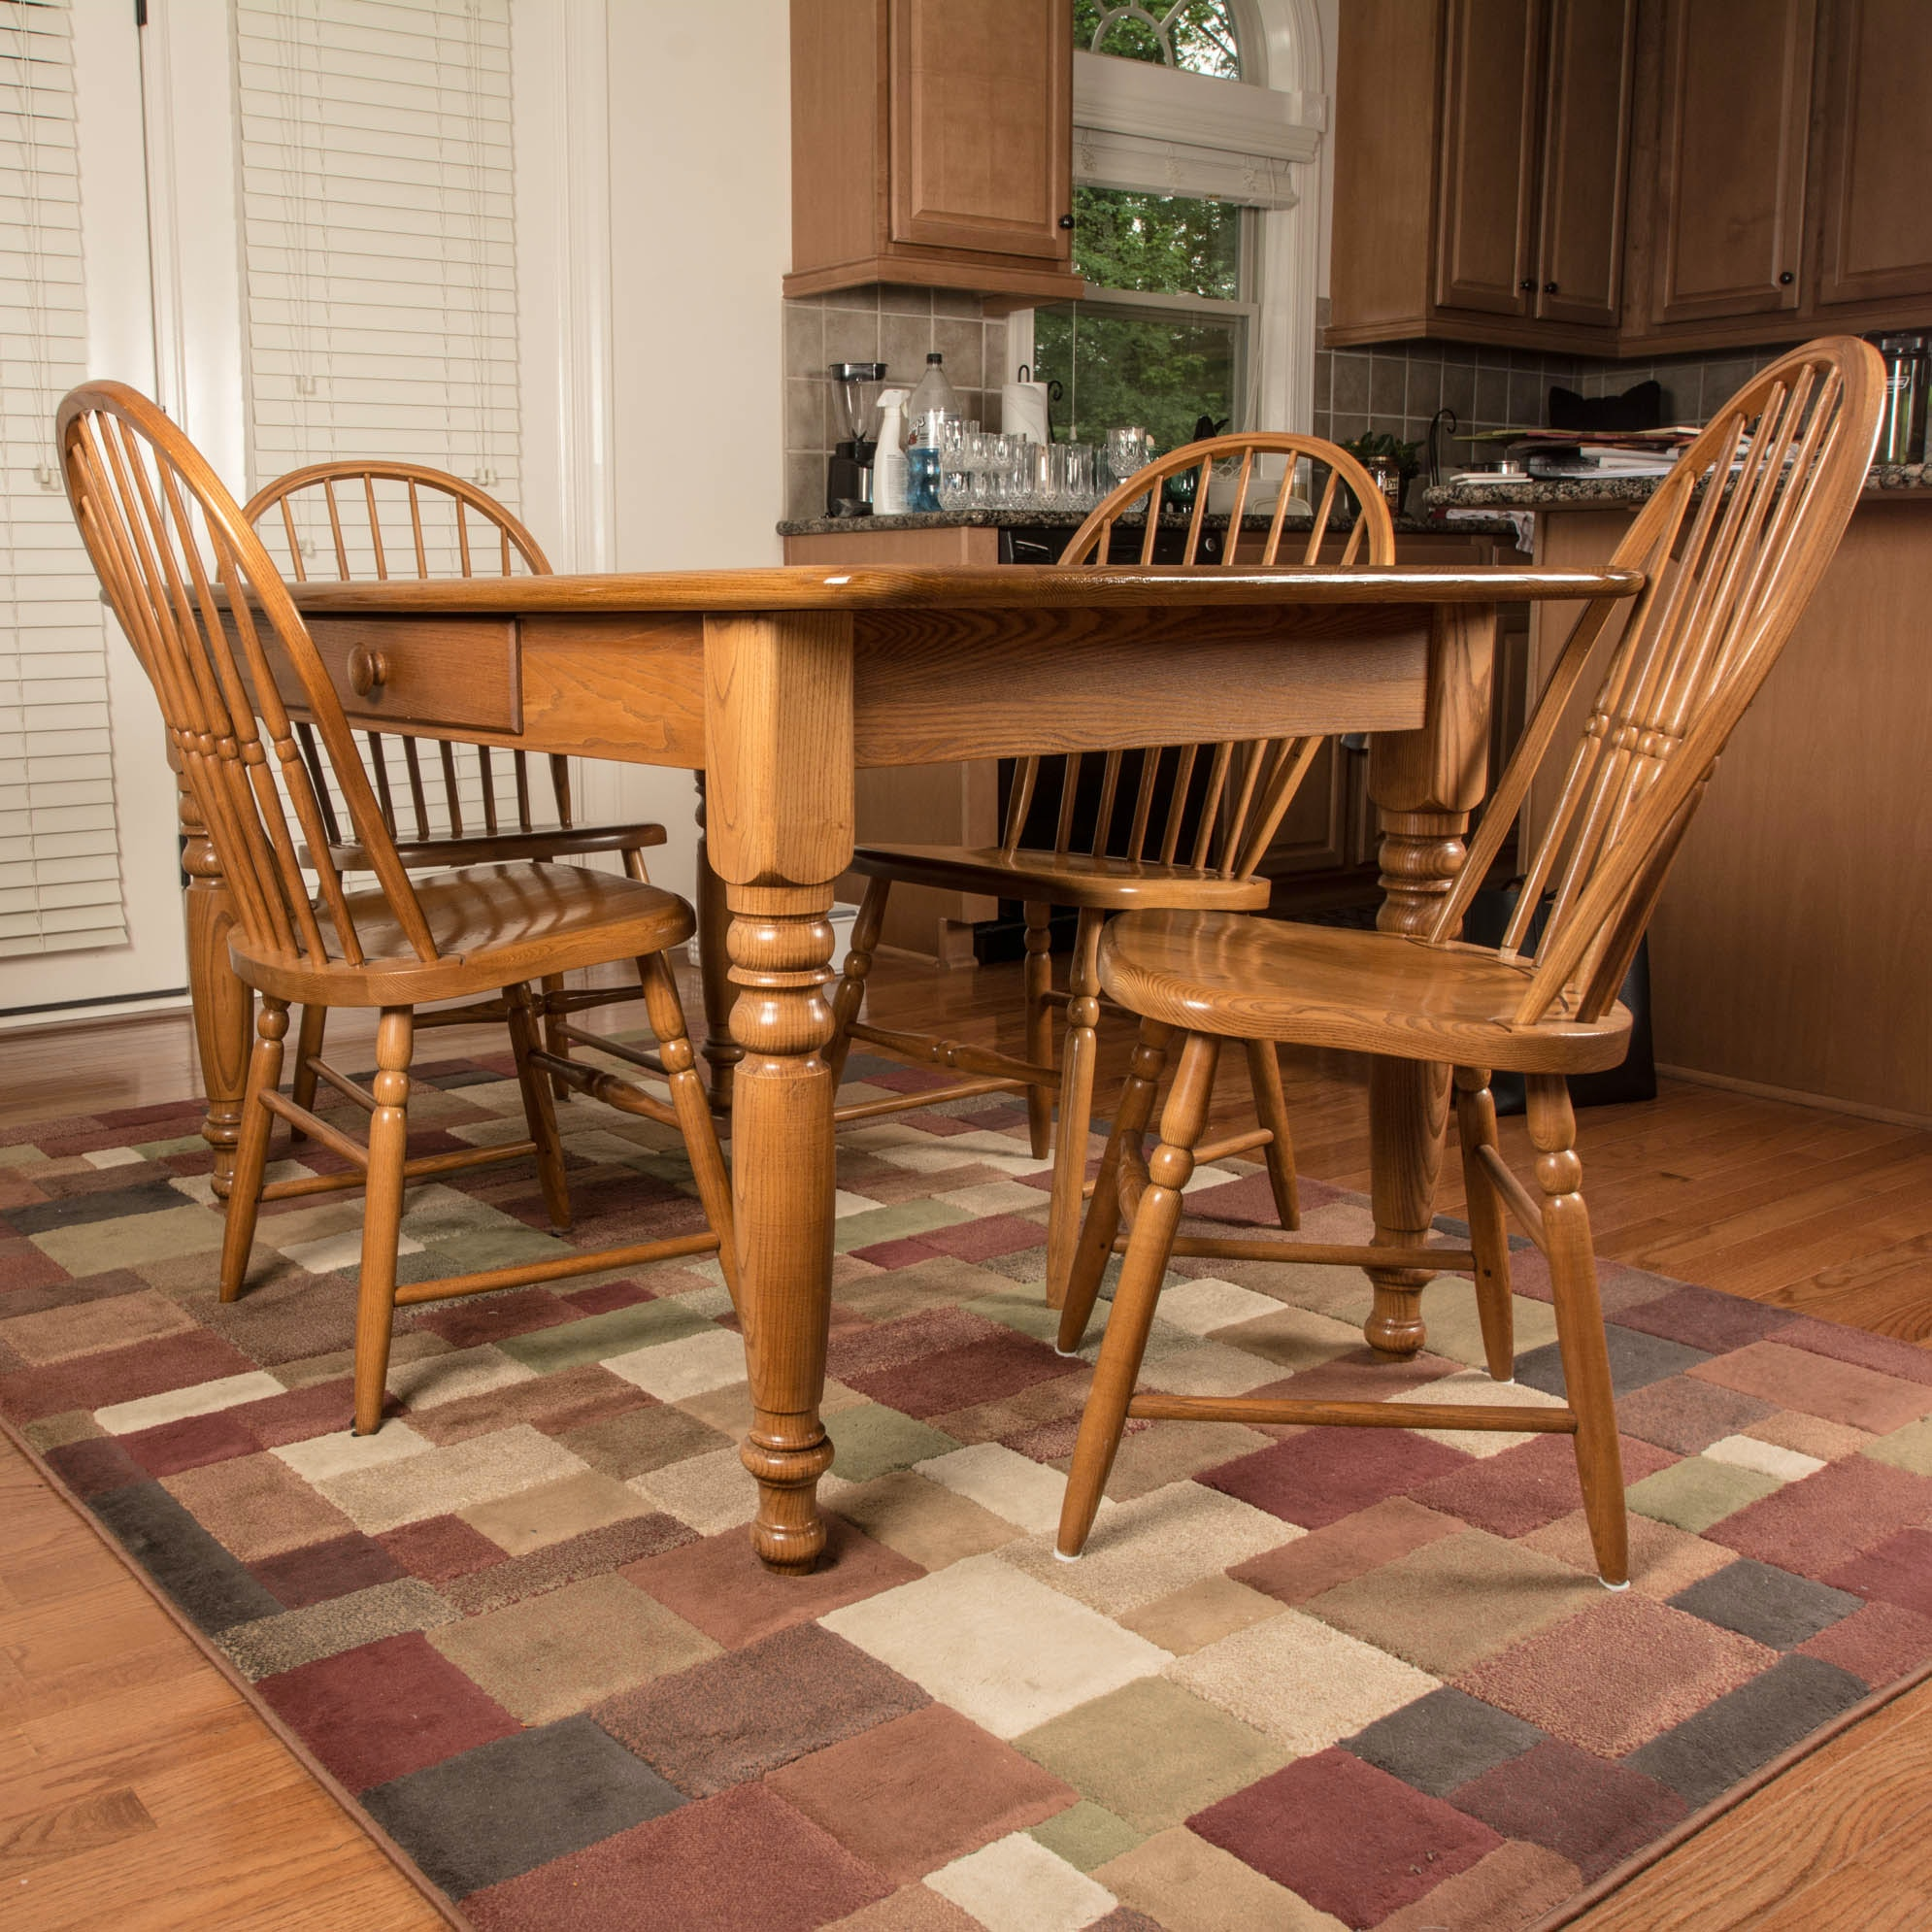 Genial Oak Farmhouse Style Dining Room Table And Chairs ...